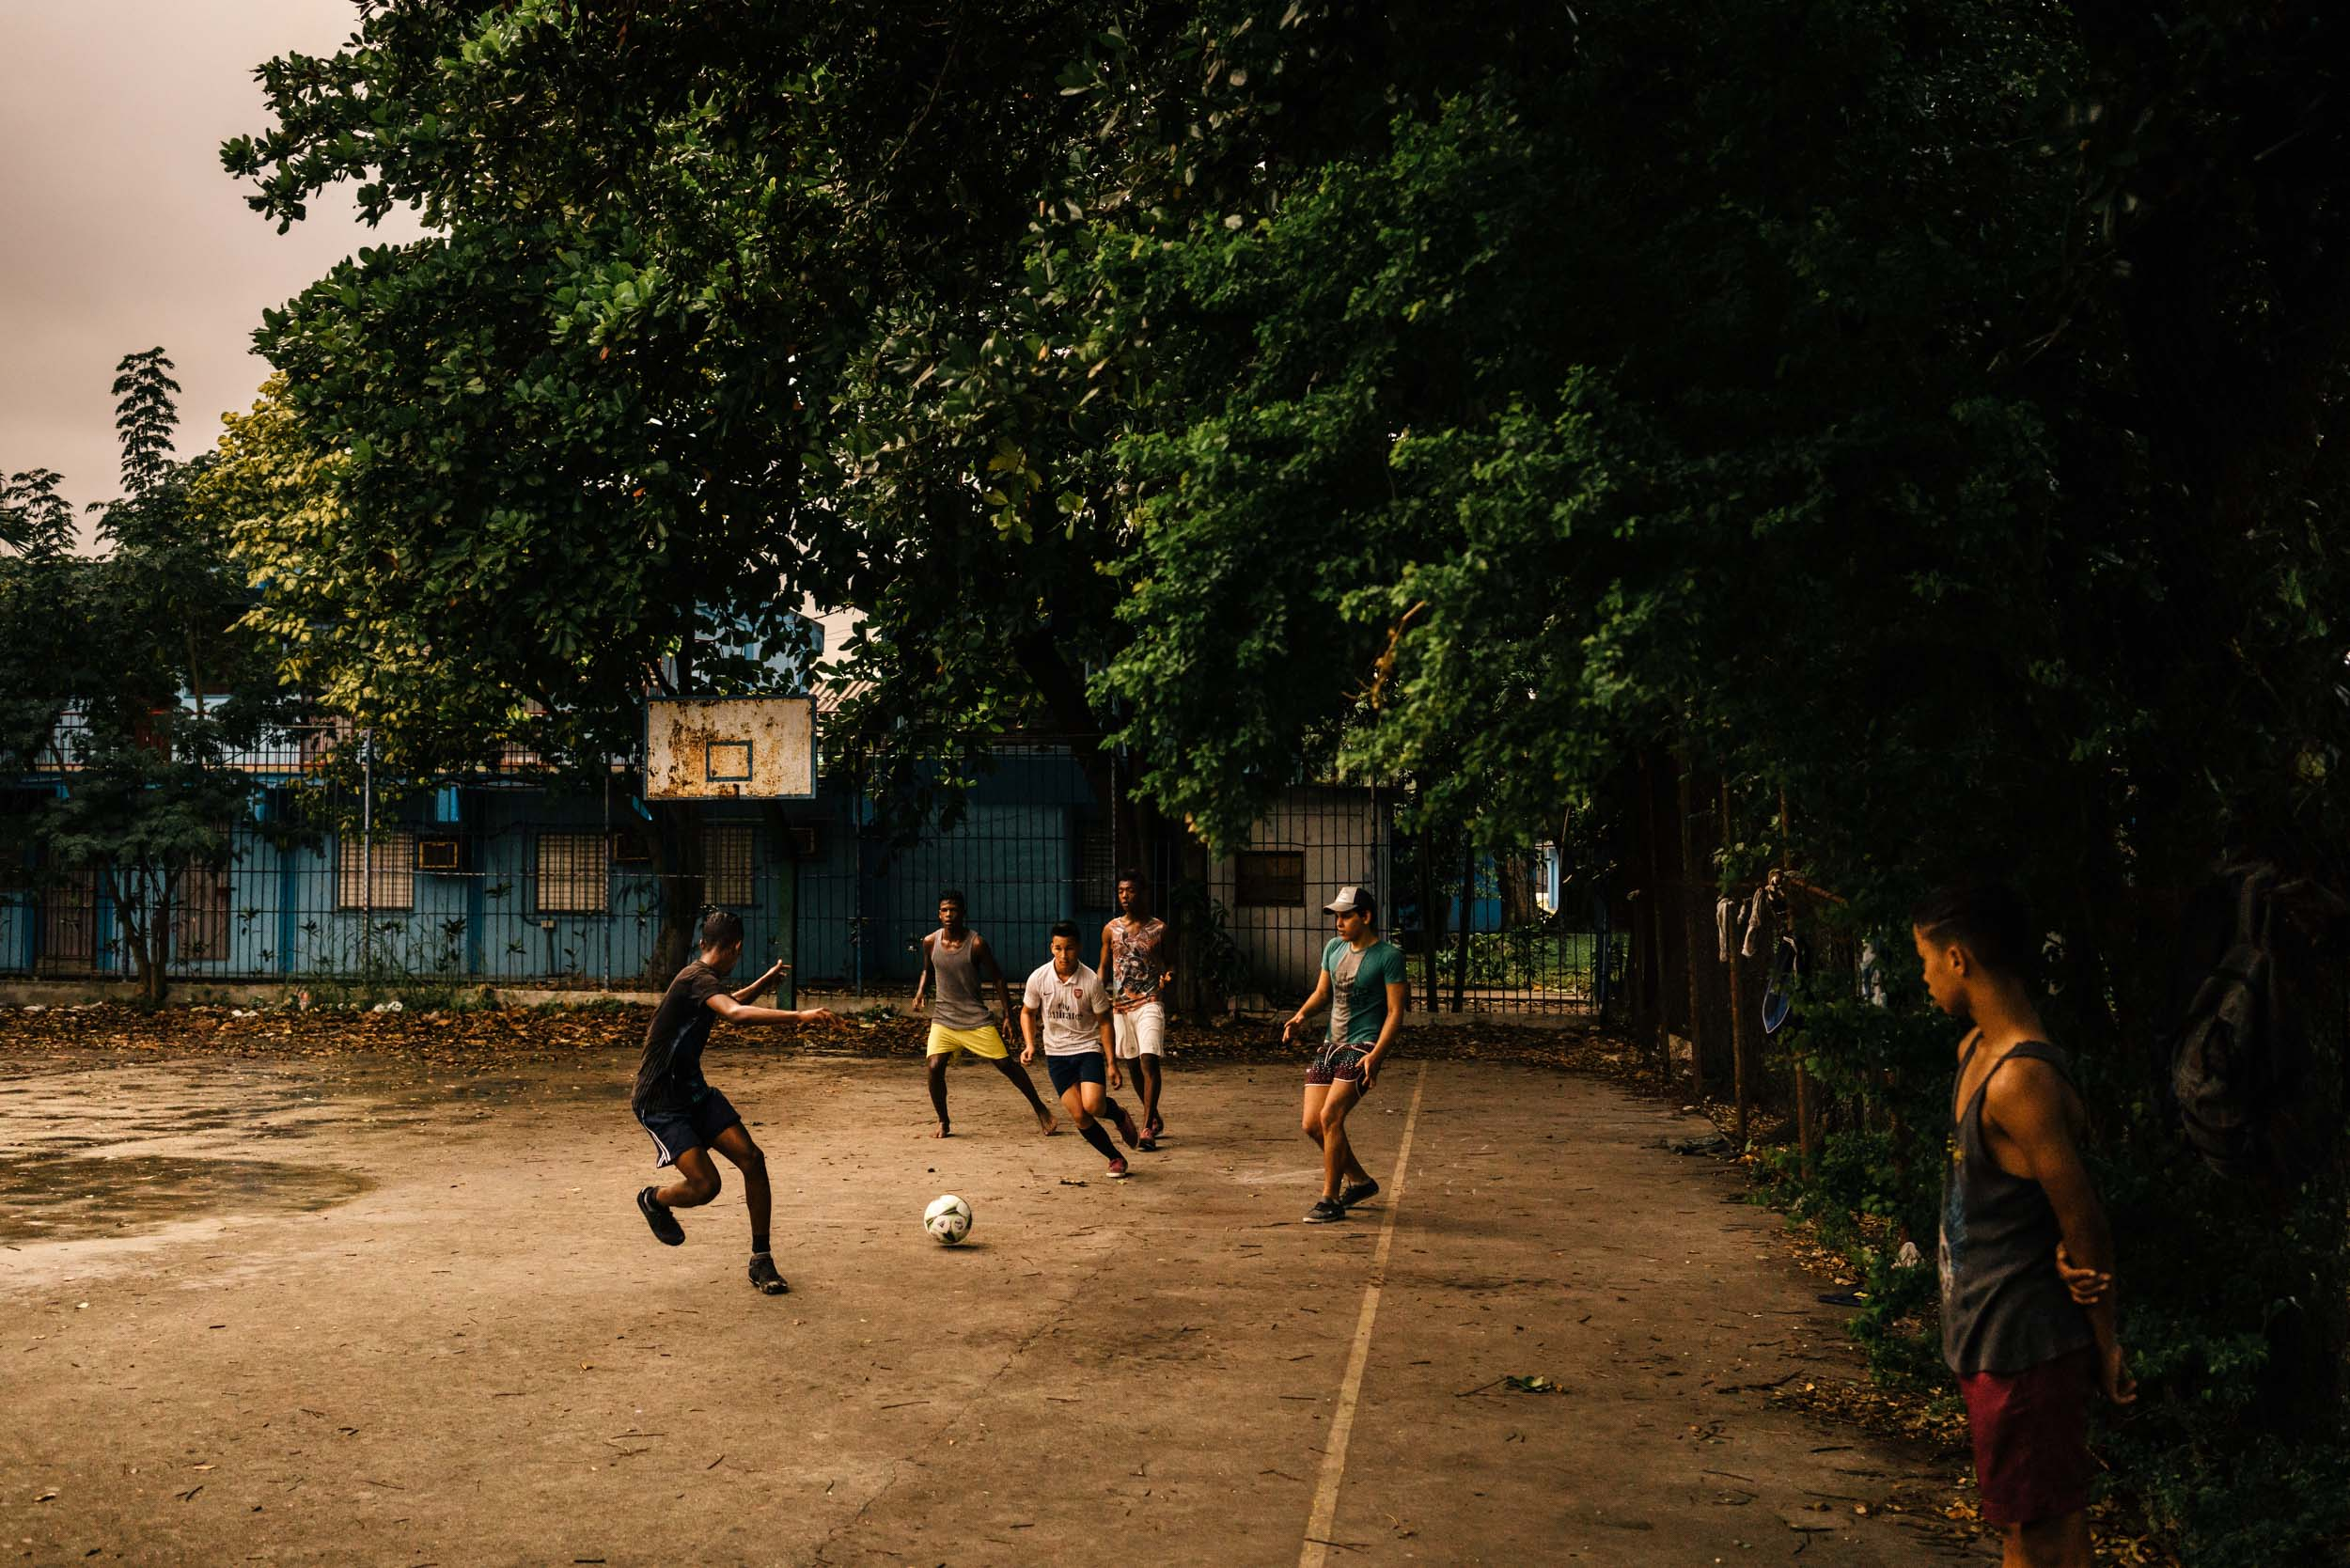 cubans playing soccer on basketball court